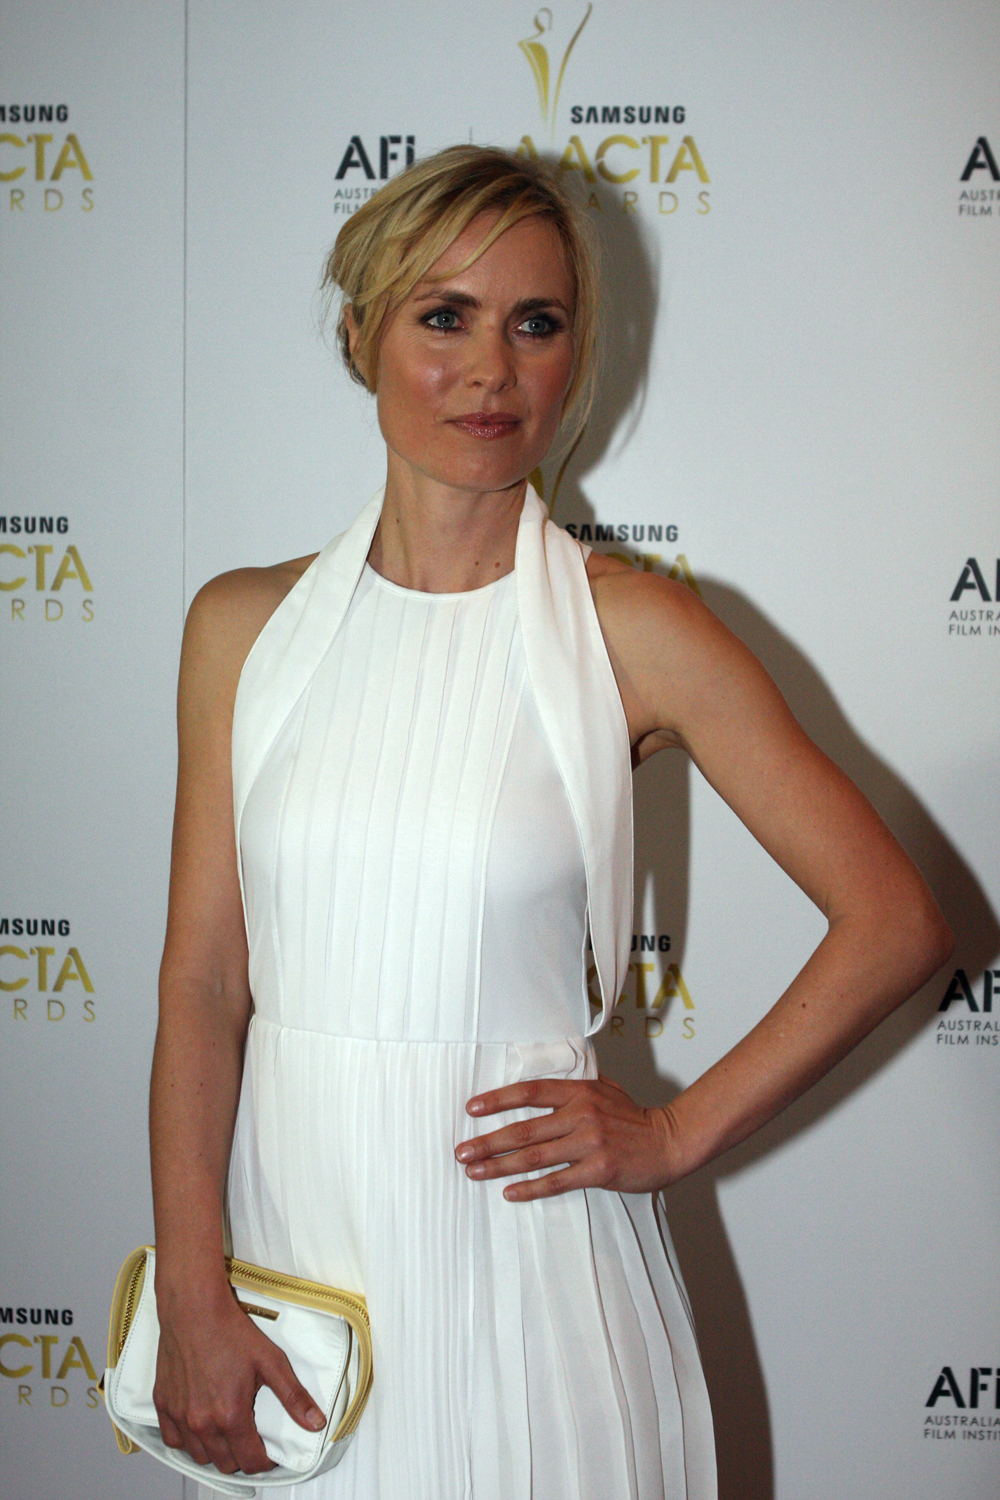 radha mitchell 2015radha mitchell wiki, radha mitchell maxim, radha mitchell family, radha mitchell spouse, radha mitchell married, radha mitchell vk, radha mitchell net worth, radha mitchell imdb, radha mitchell and rosie perez, radha mitchell darkness, radha mitchell instagram, radha mitchell husband, radha mitchell age, radha mitchell movies, radha mitchell, radha mitchell parents, radha mitchell boyfriend, radha mitchell 2015